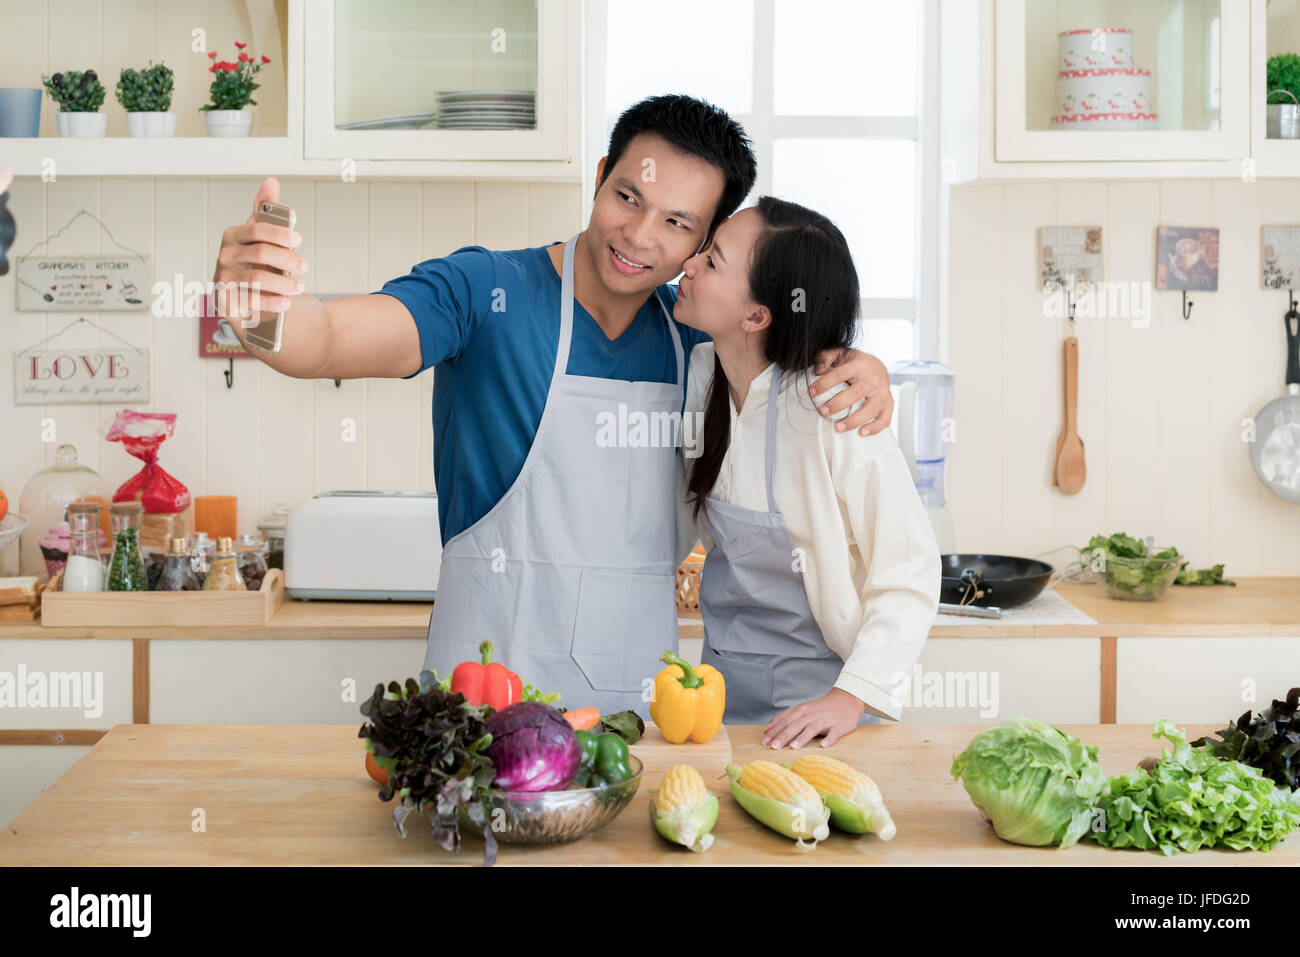 Asian handsome guy is smiling and cooking in kitchen while doing selfie using smartphone at home. Happy love couple - Stock Image